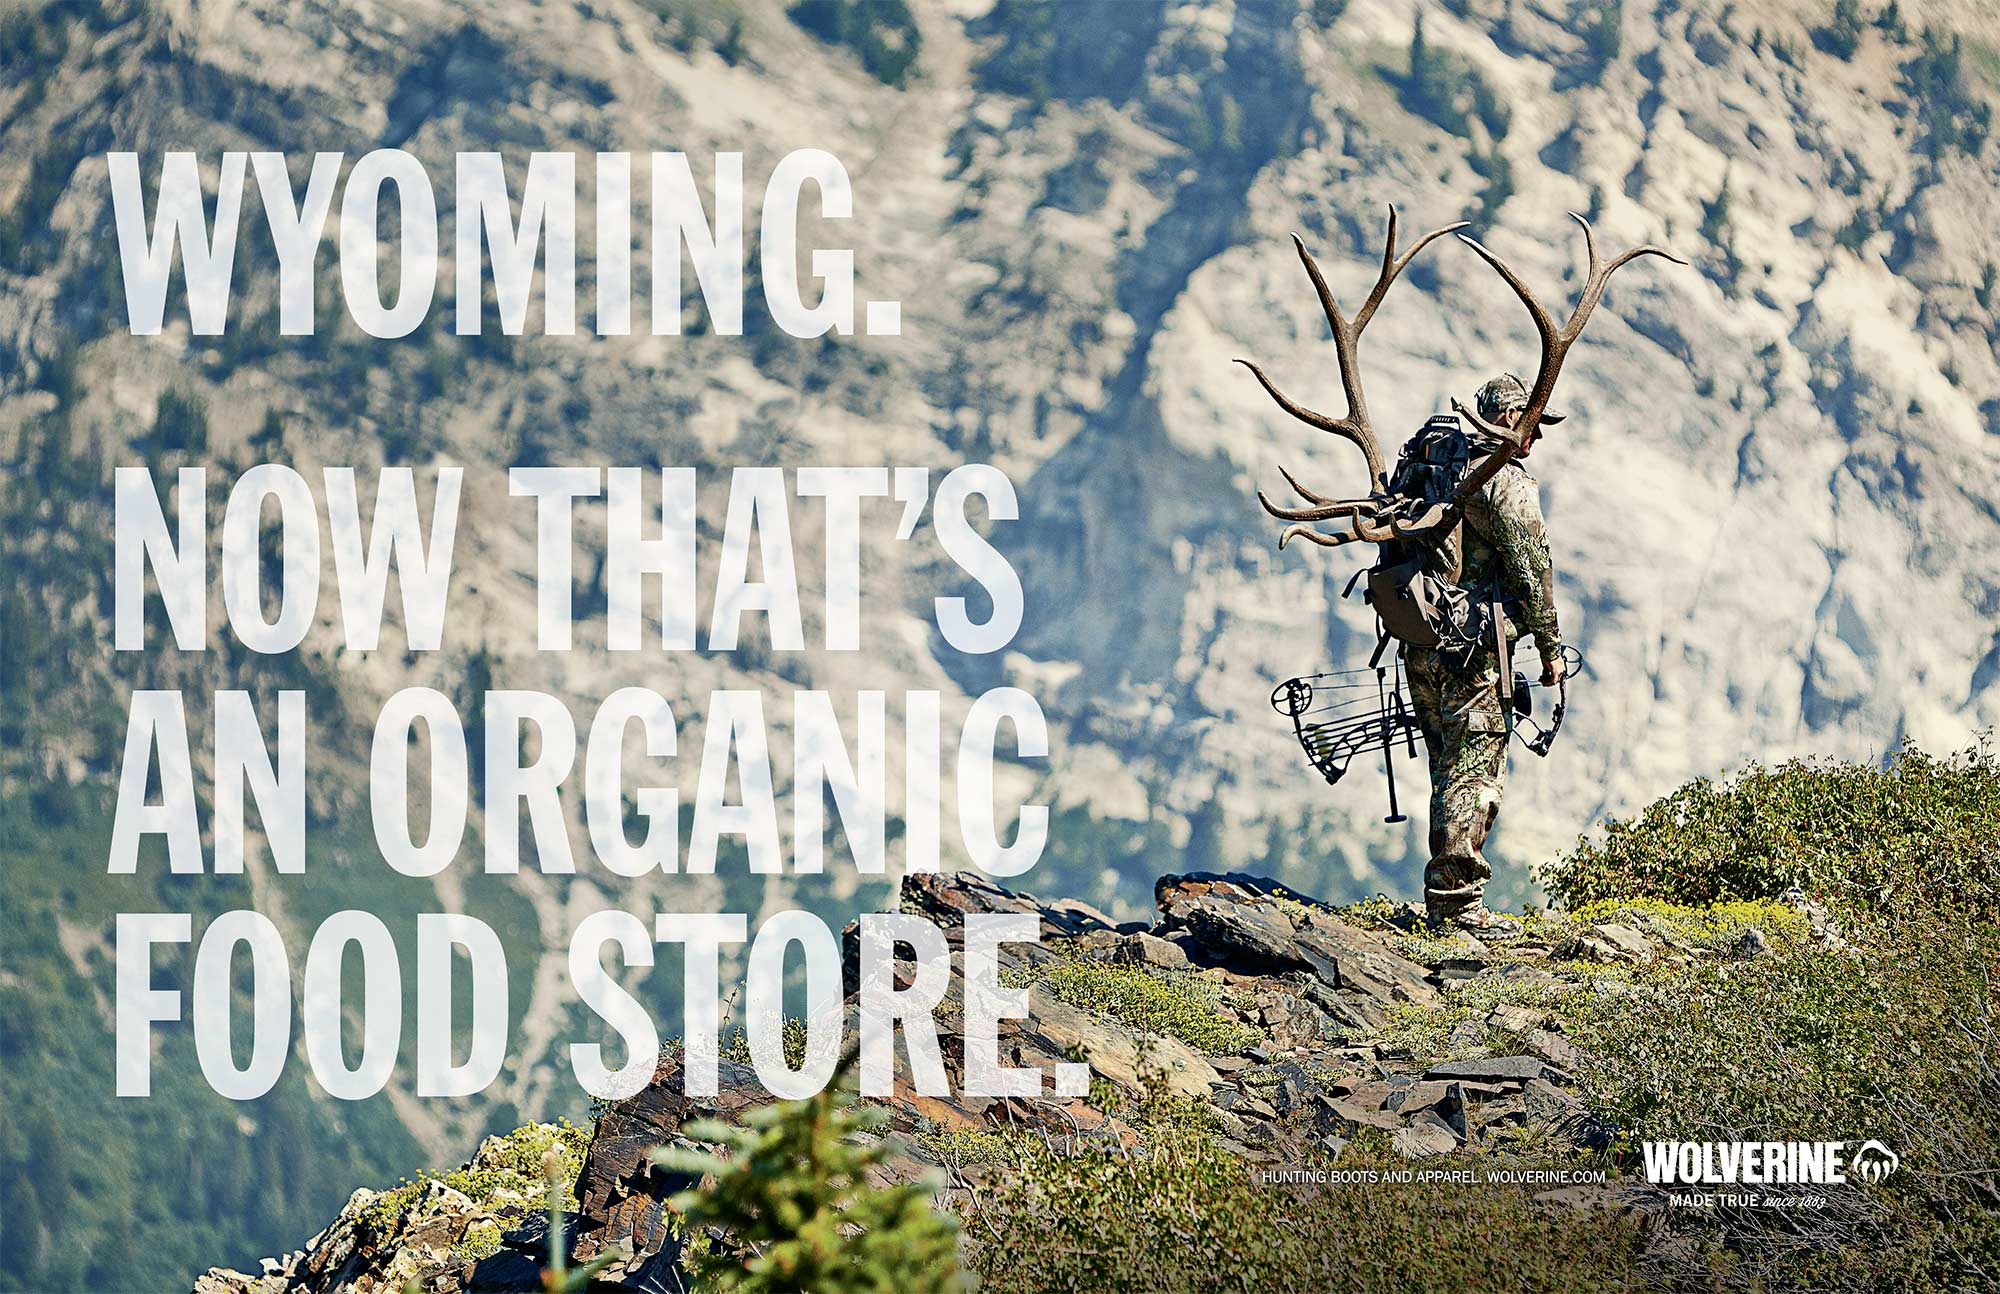 Final print ad for Wolverine outdoor and hunting boots photographed high up in Snowbird, Utah.